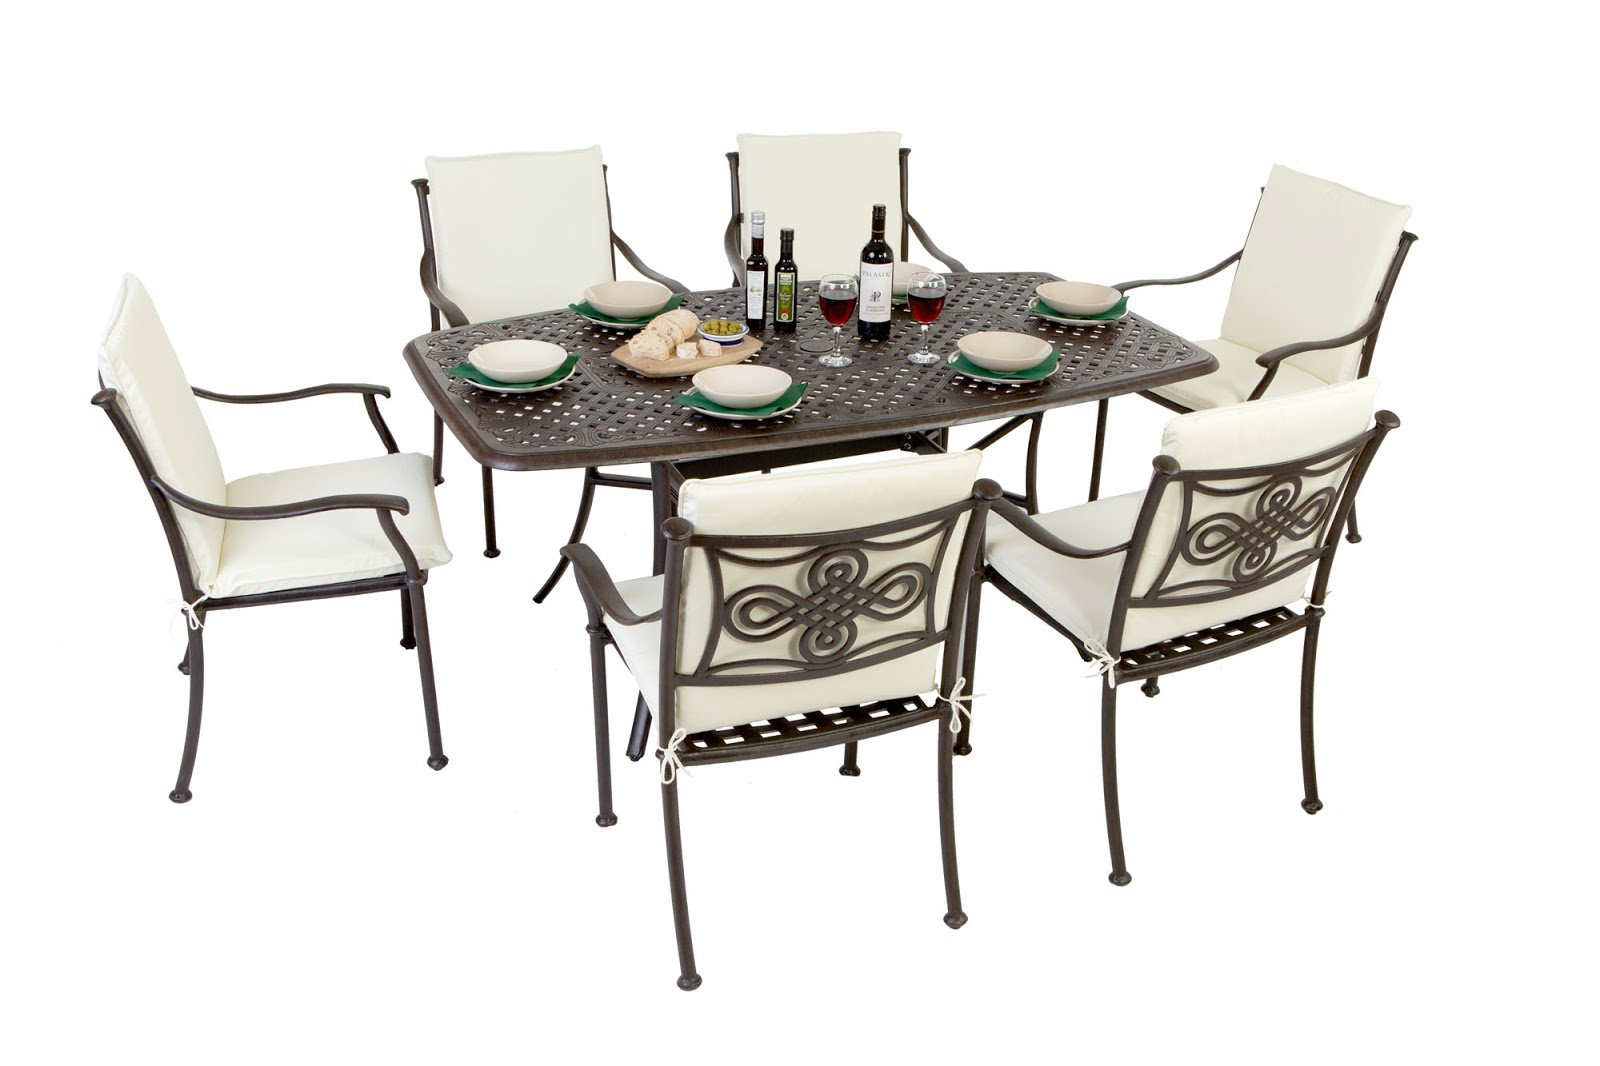 6 Seater Patio Table Gallery Decoration Ideas Images